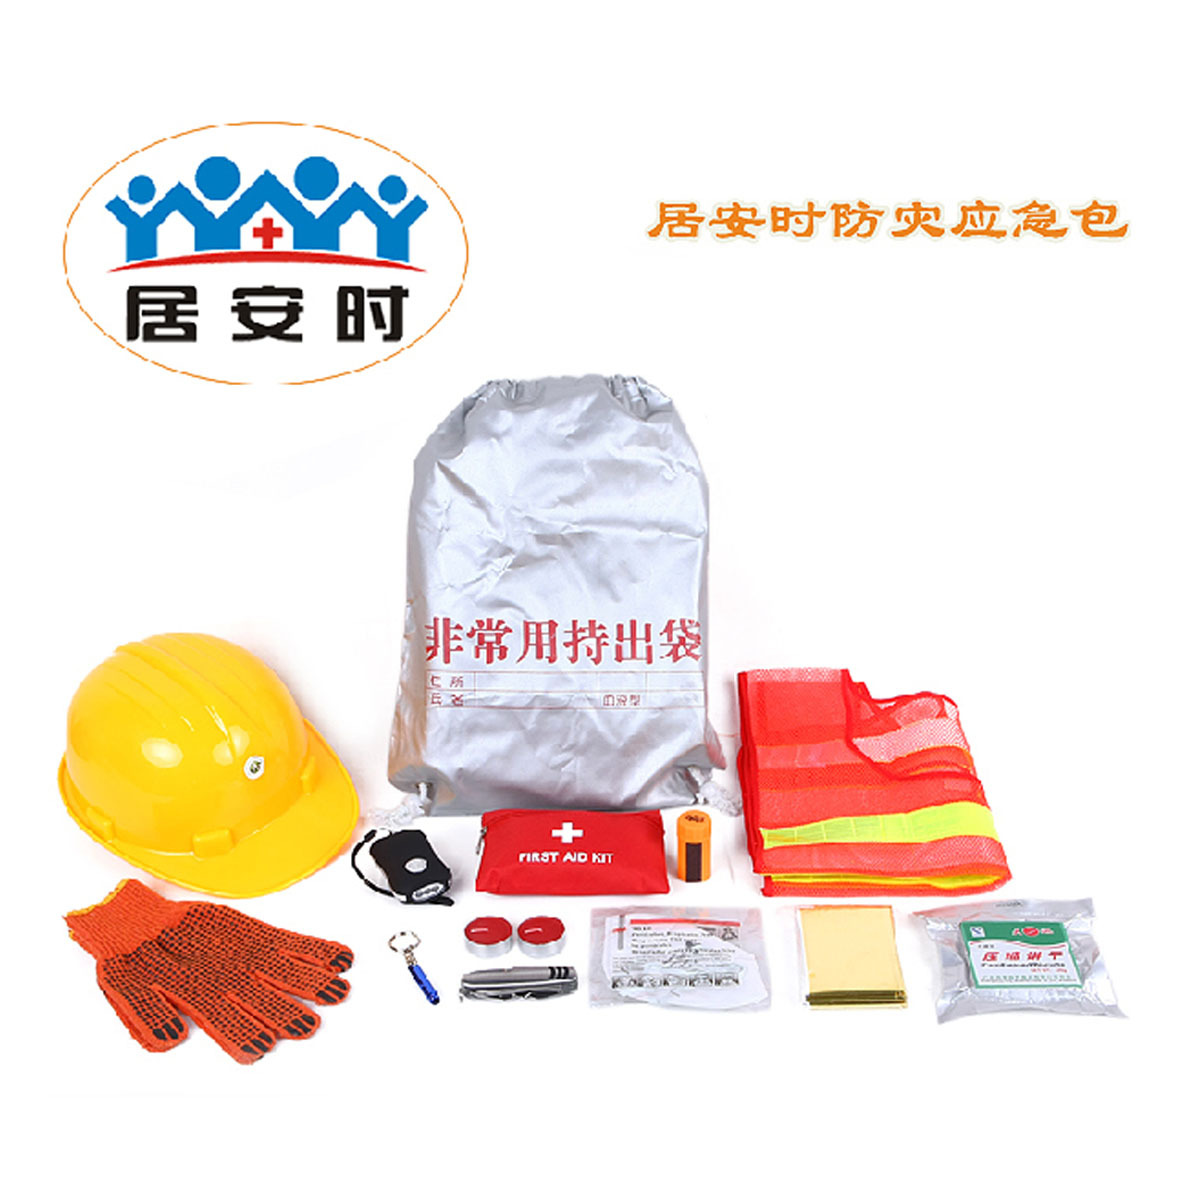 ESSENTIAL team Survival bags first aid kit outdoor bag emergency bag empty bag for travel medical kit outdoor emergency kit home first aid kit treatment pack camping mini survival bag